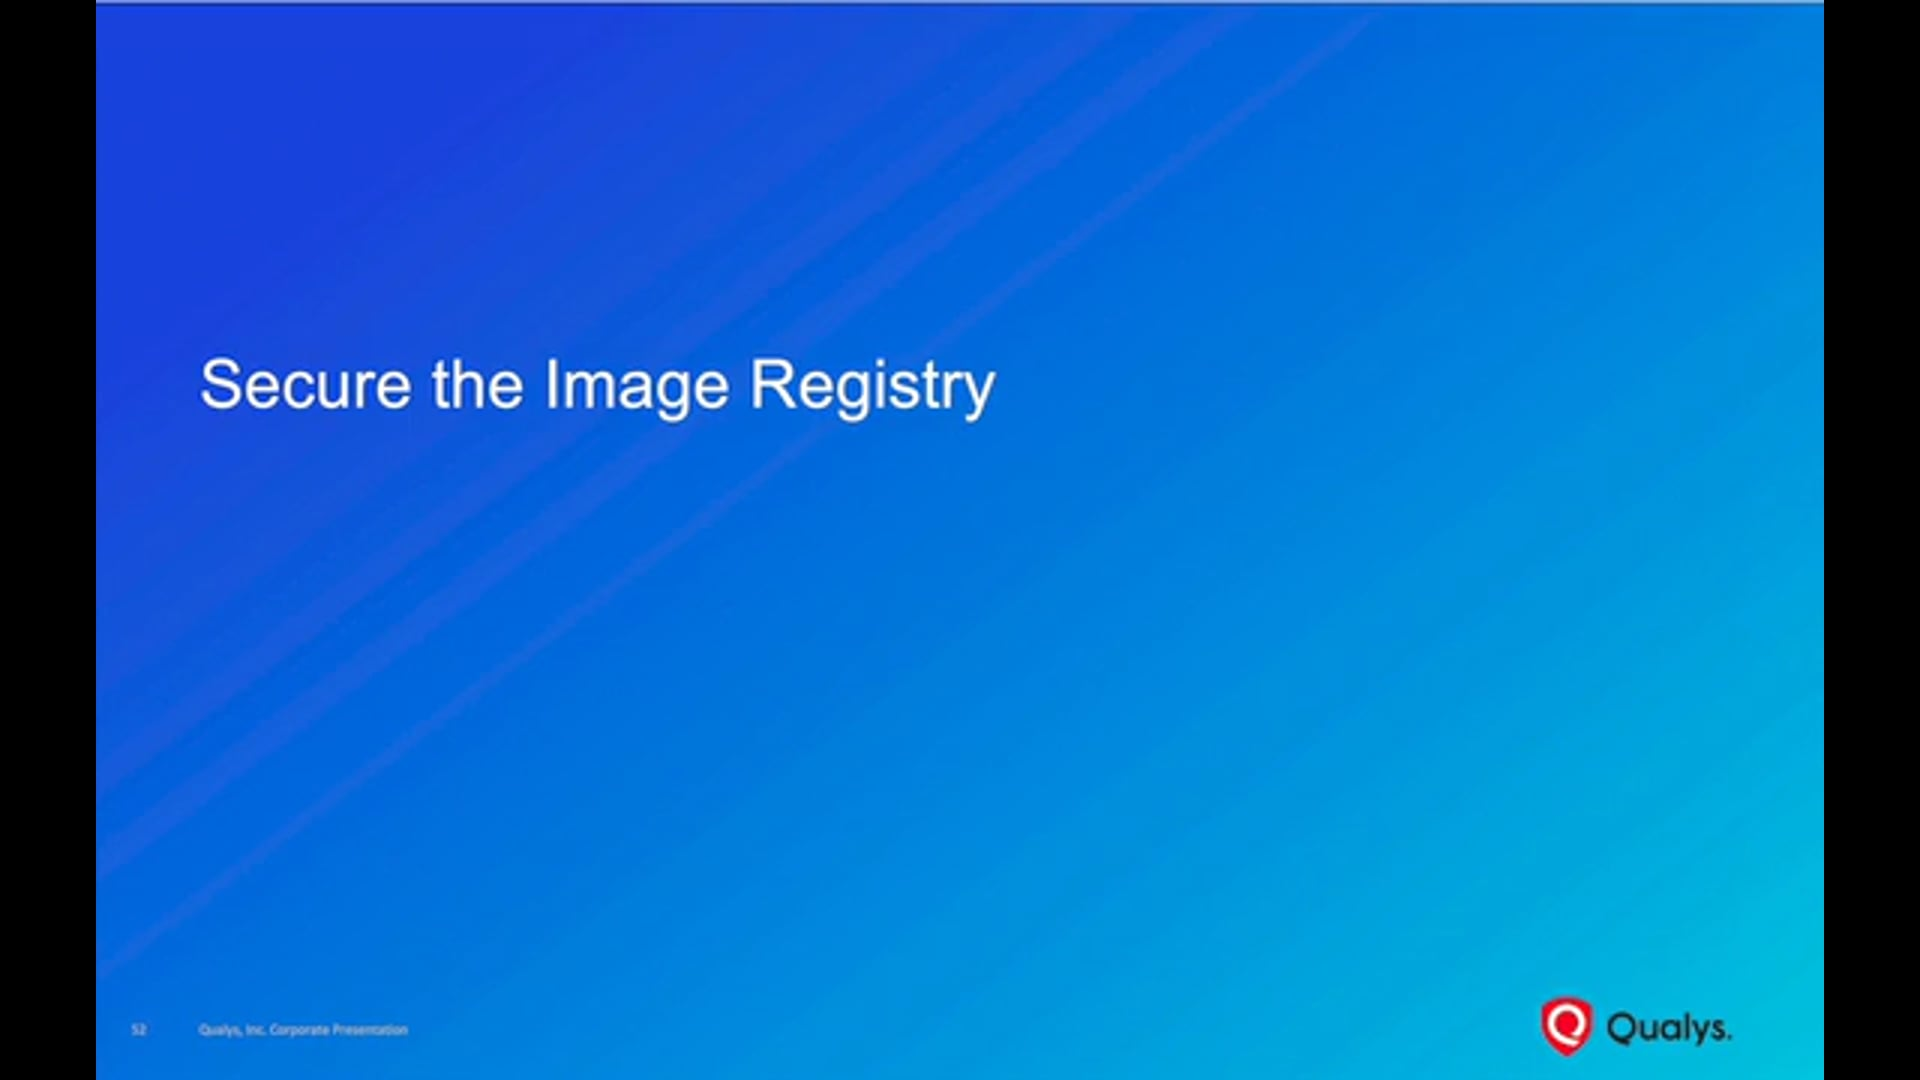 Secure the Image Registry